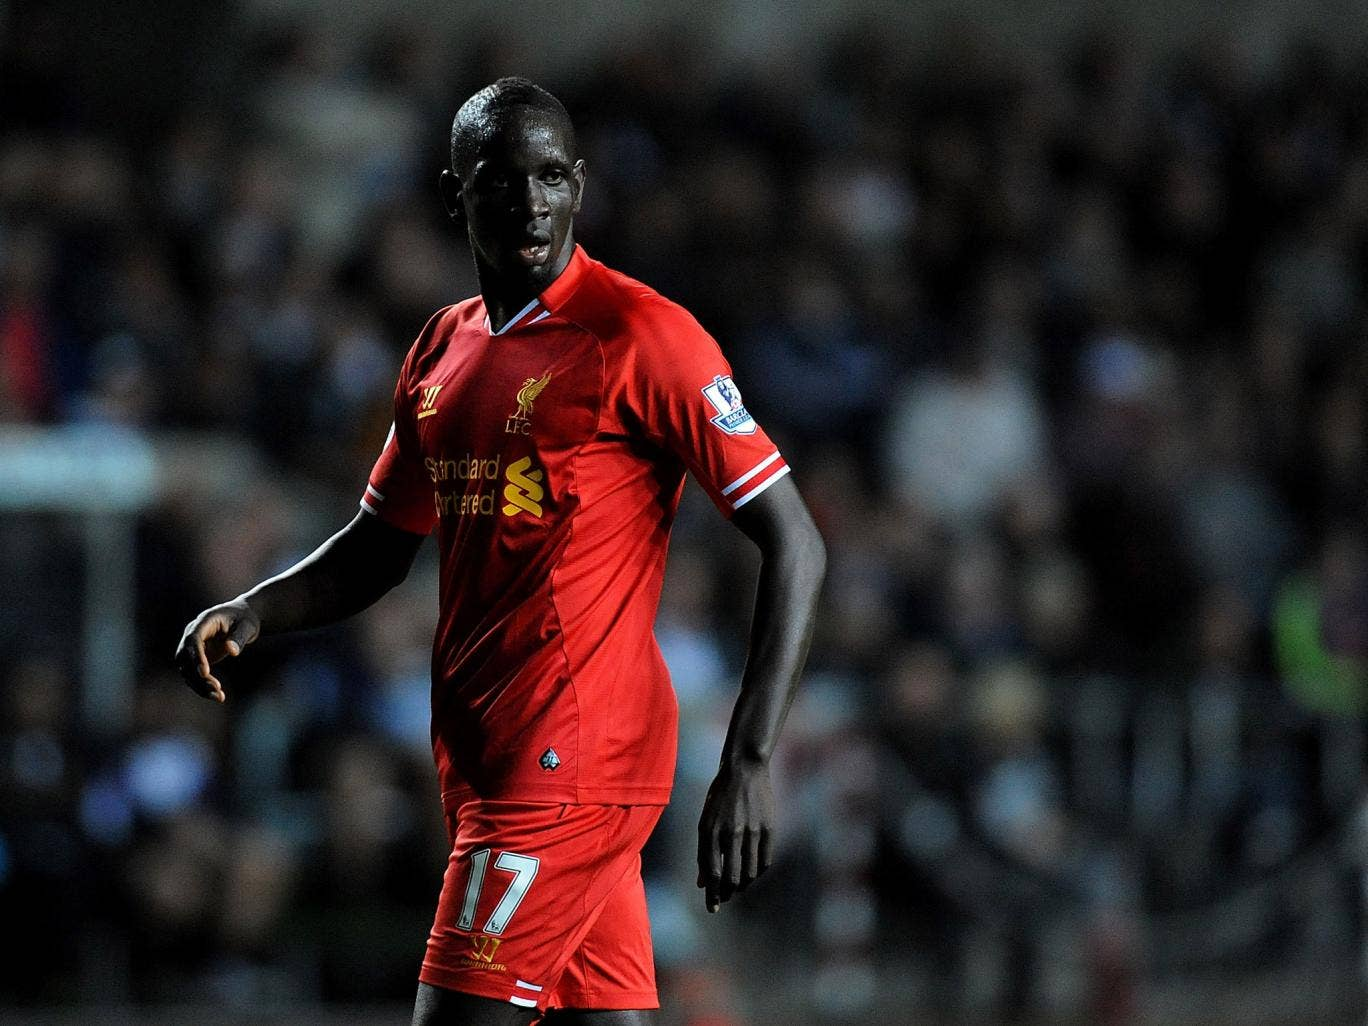 Mamadou Sakho impressed on his debut for Liverpool